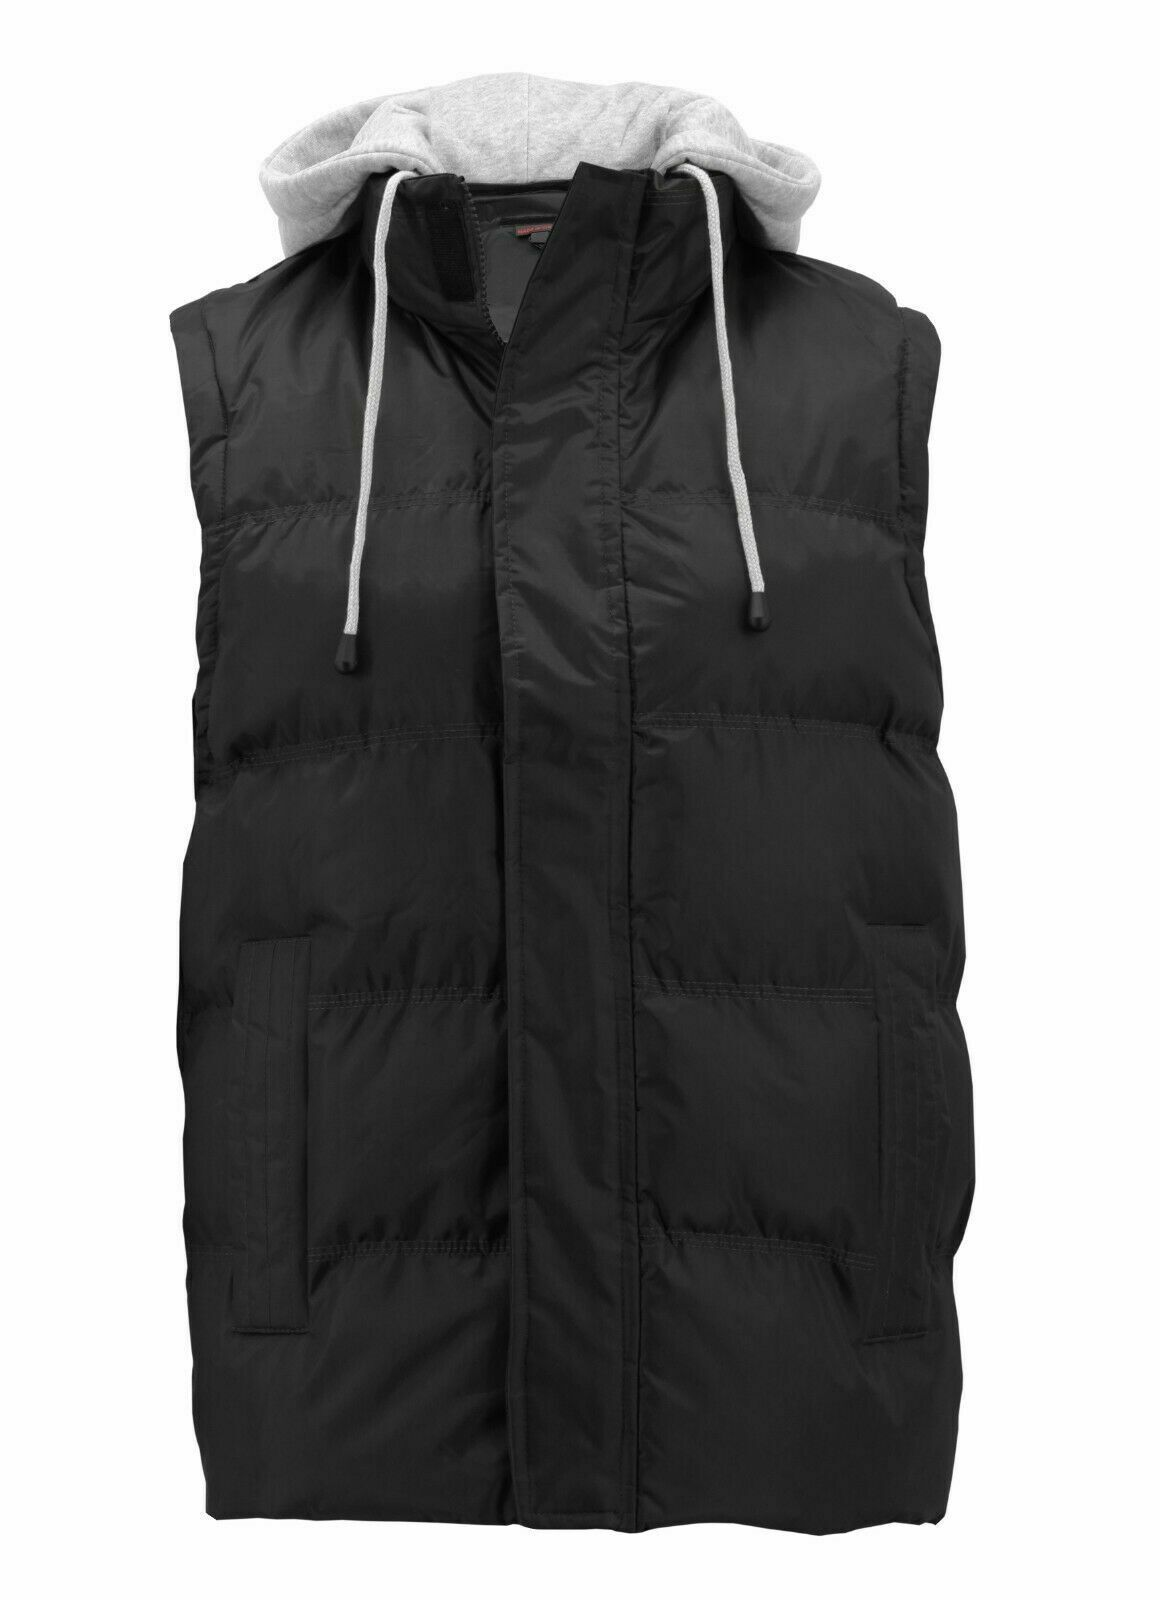 Men's Puffer Quilted Lightweight Zipper Vest With Removable Hood w/ Defects 2XL